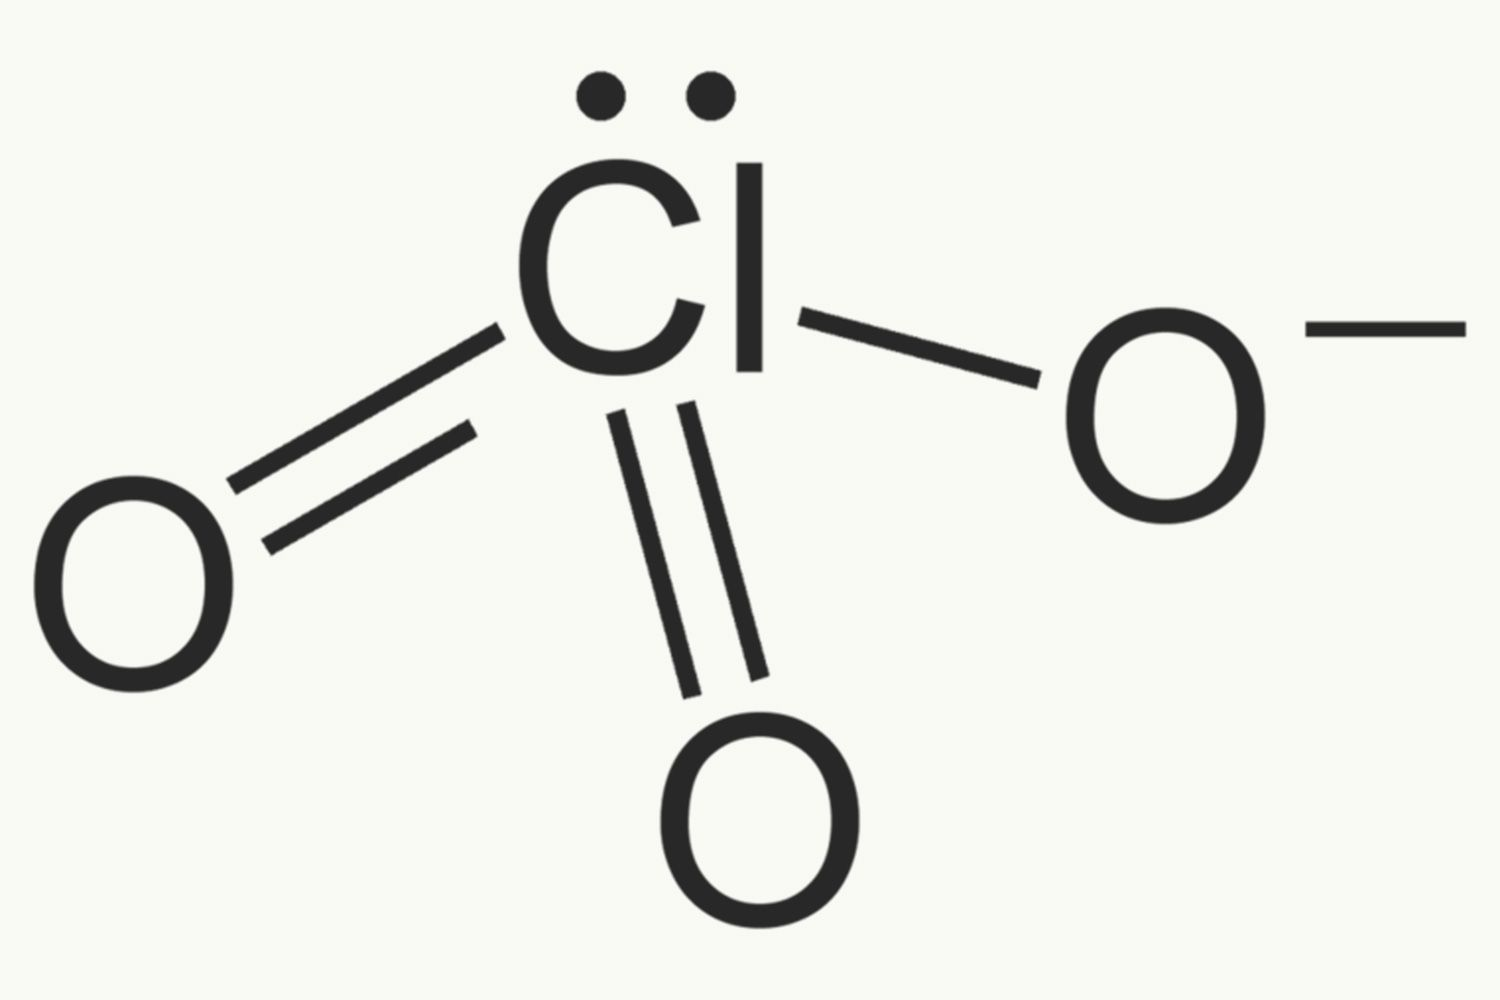 Chlorate anion